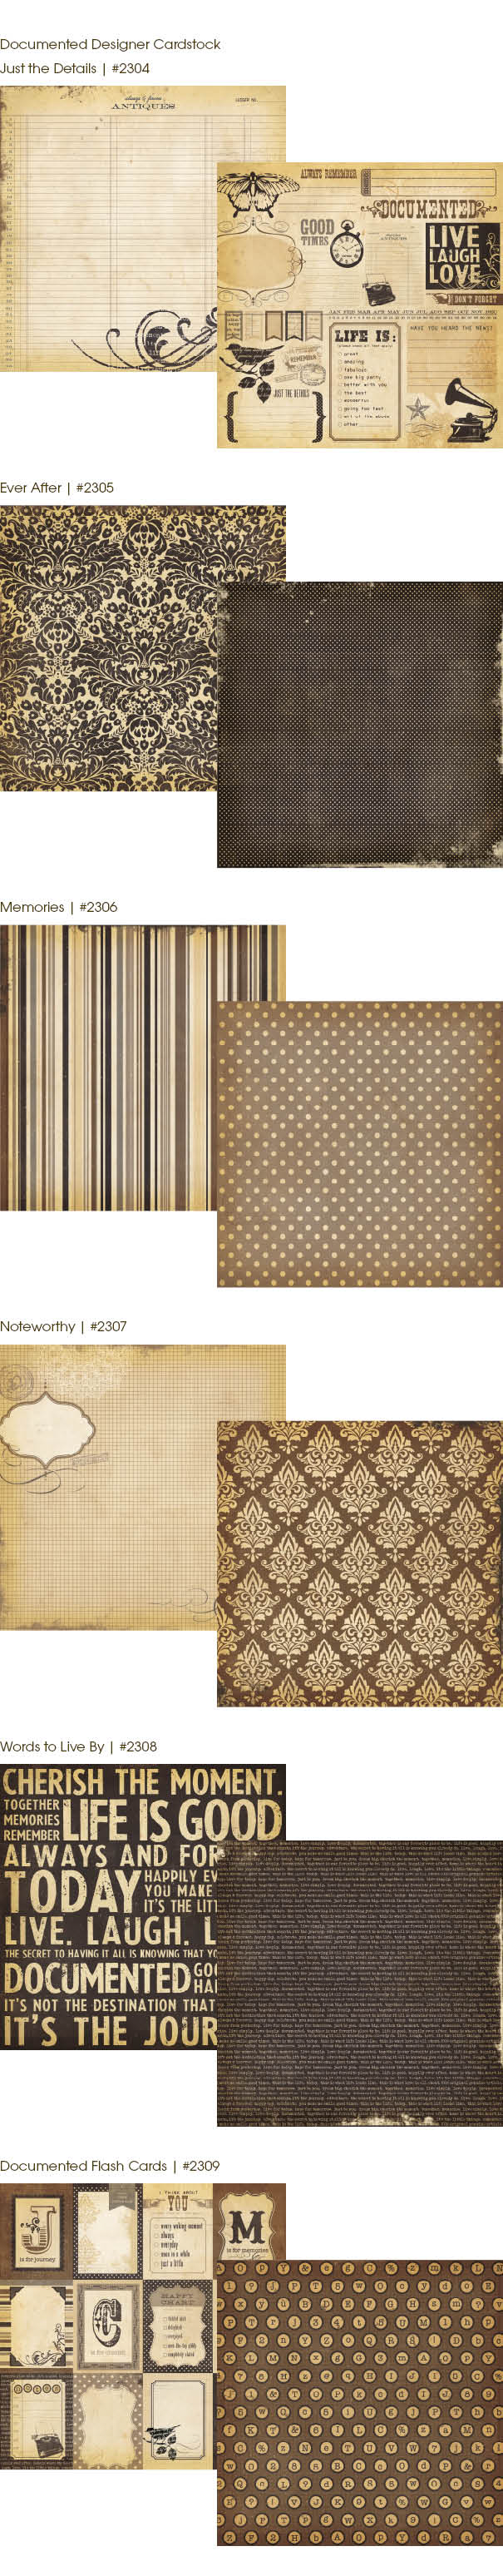 Documented_Cardstock